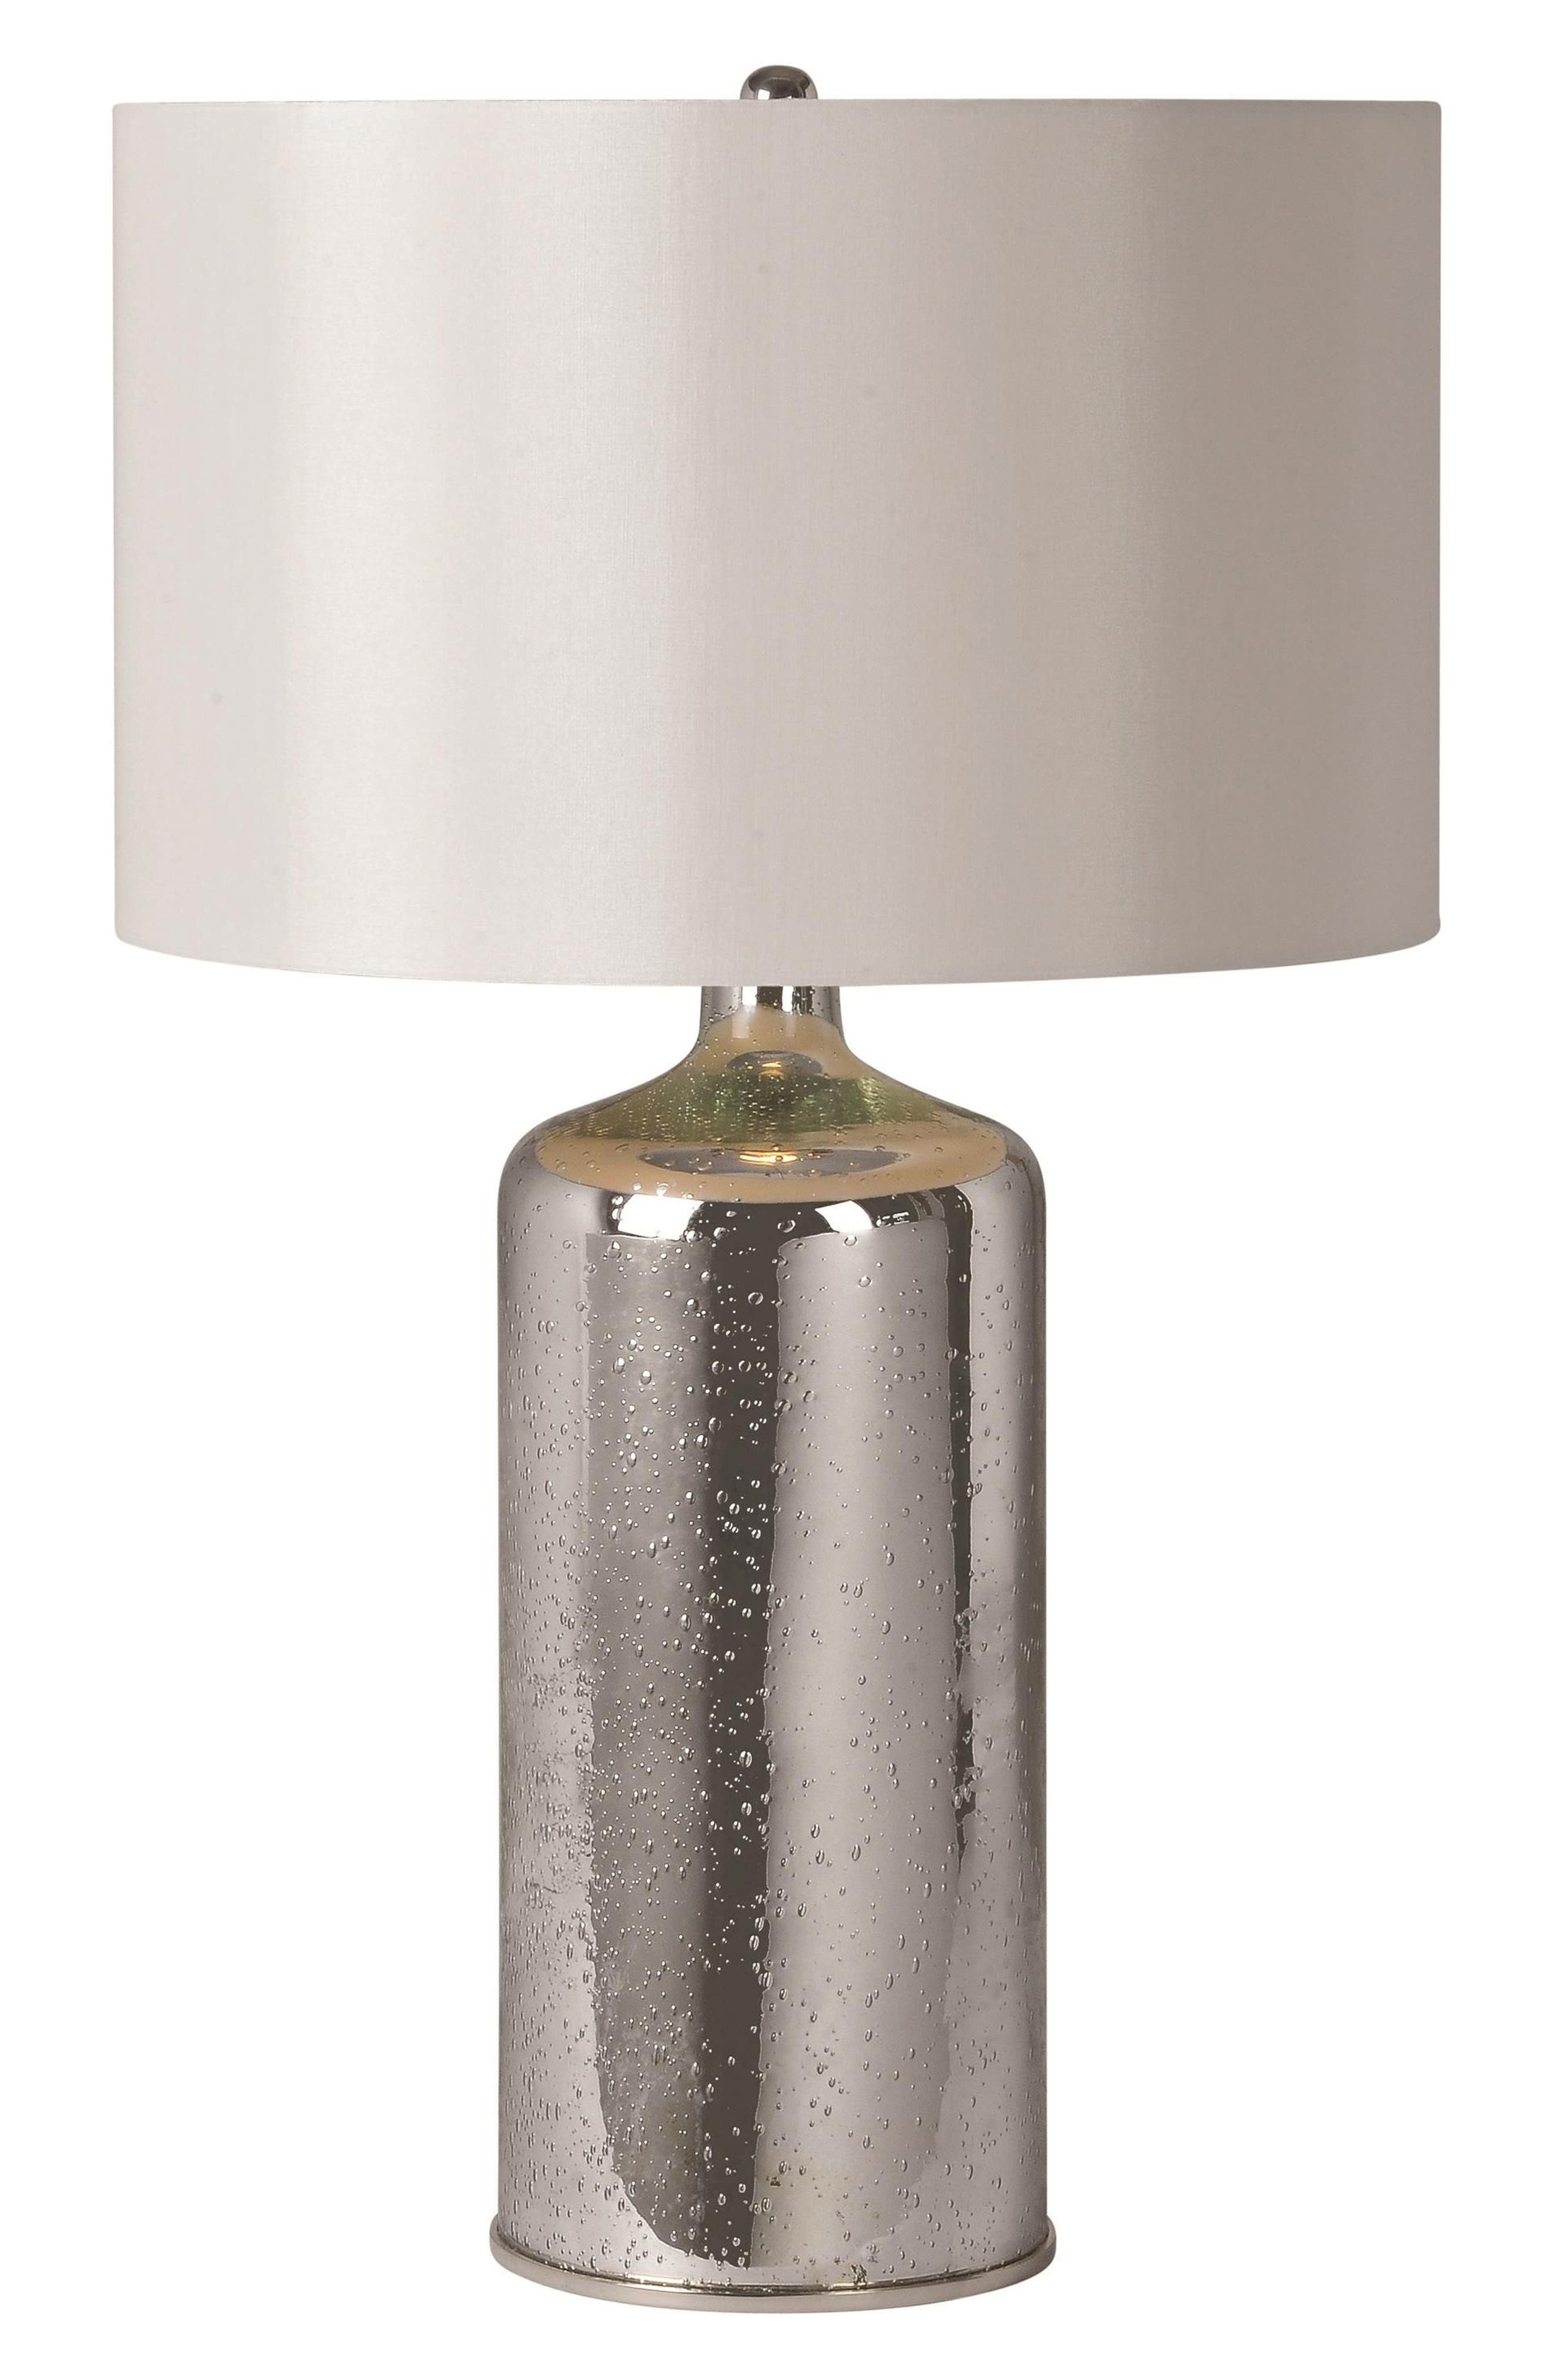 Rita Table Lamp,                             Main thumbnail 1, color,                             040